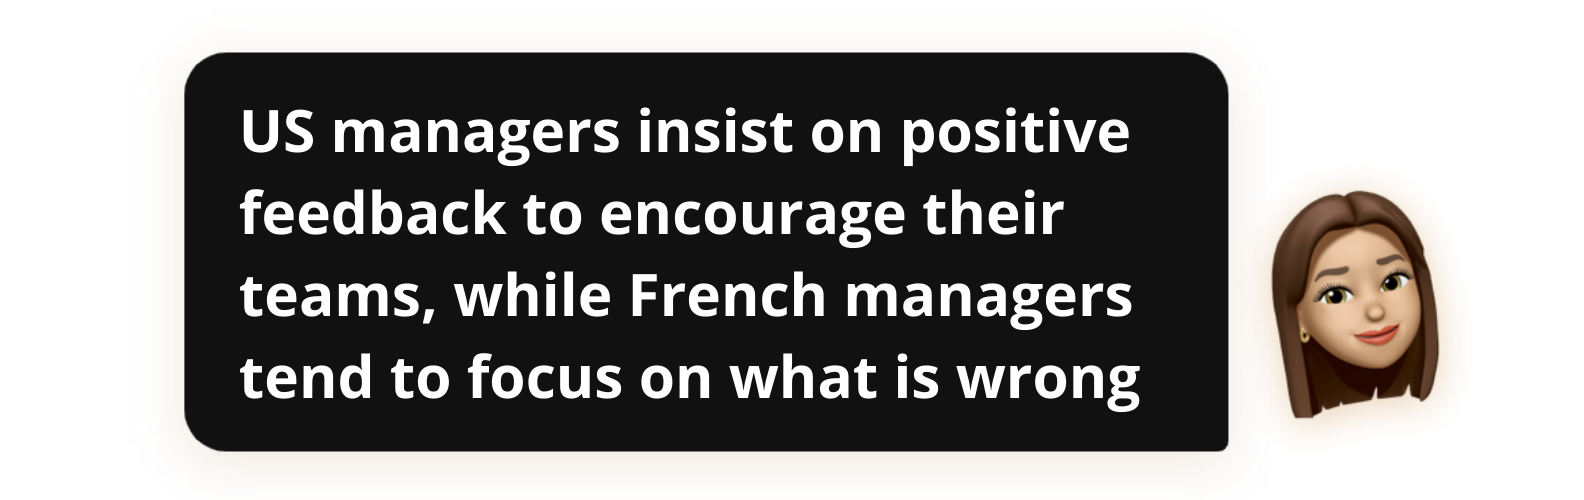 US managers insist on positive feedback to encourage their teams, while French managers tend to focus on what is wrong - Popwork